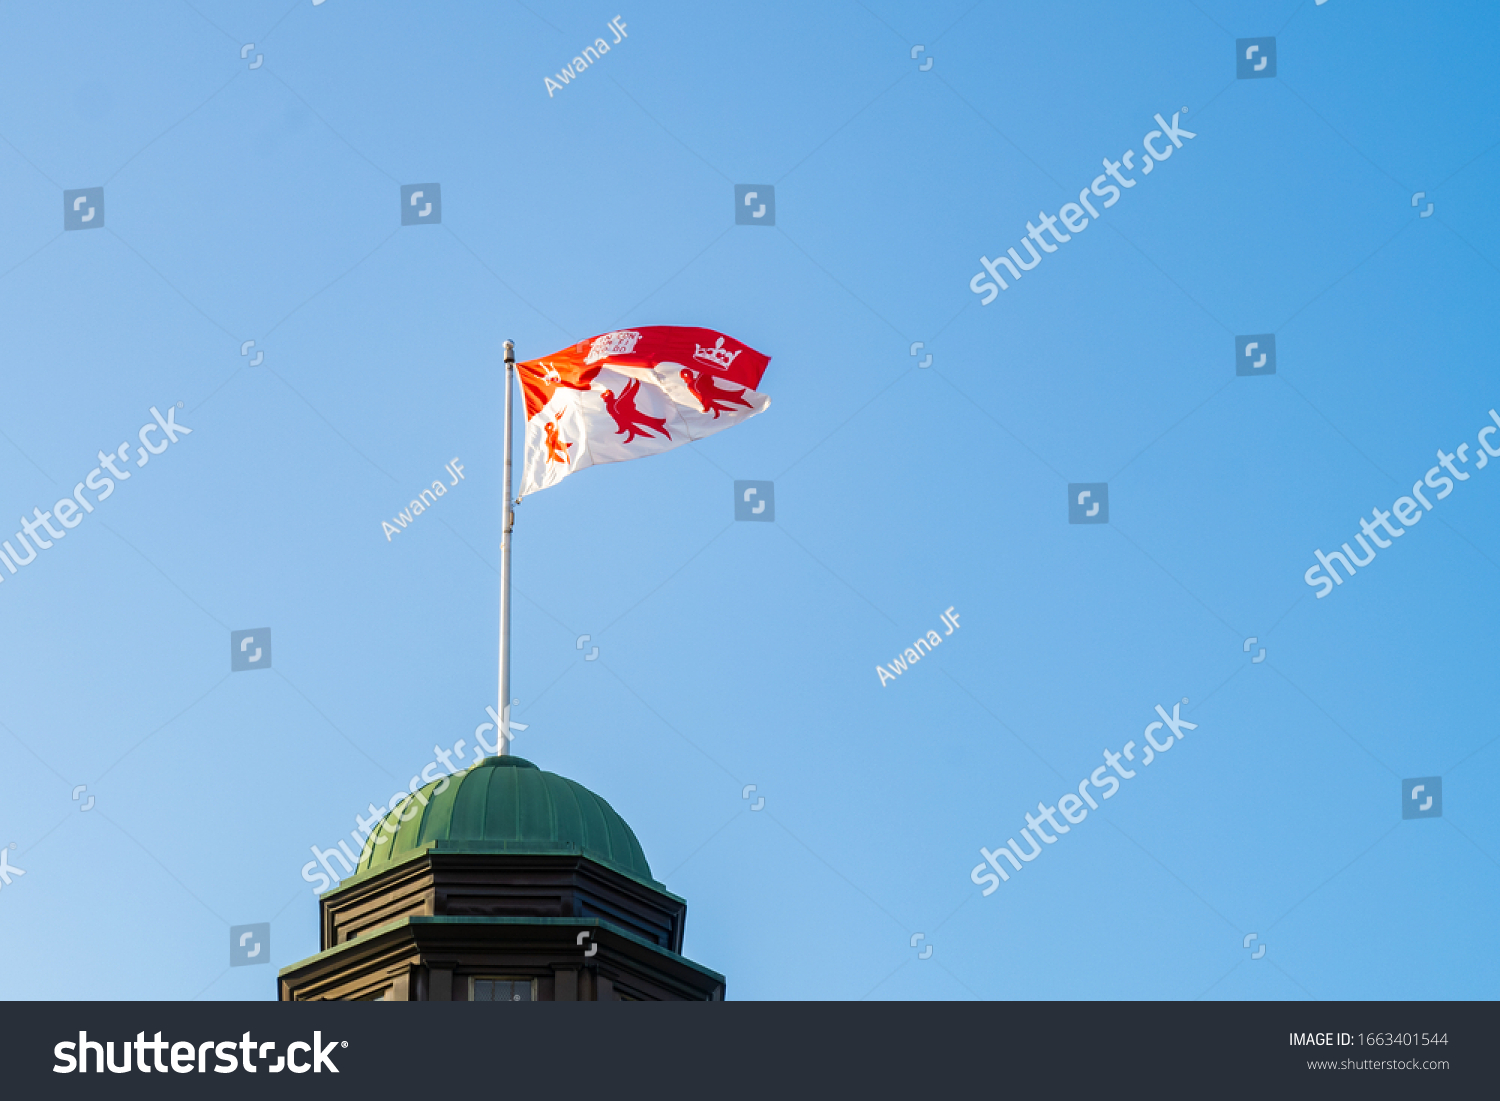 stock-photo-close-up-view-of-the-mcgill-